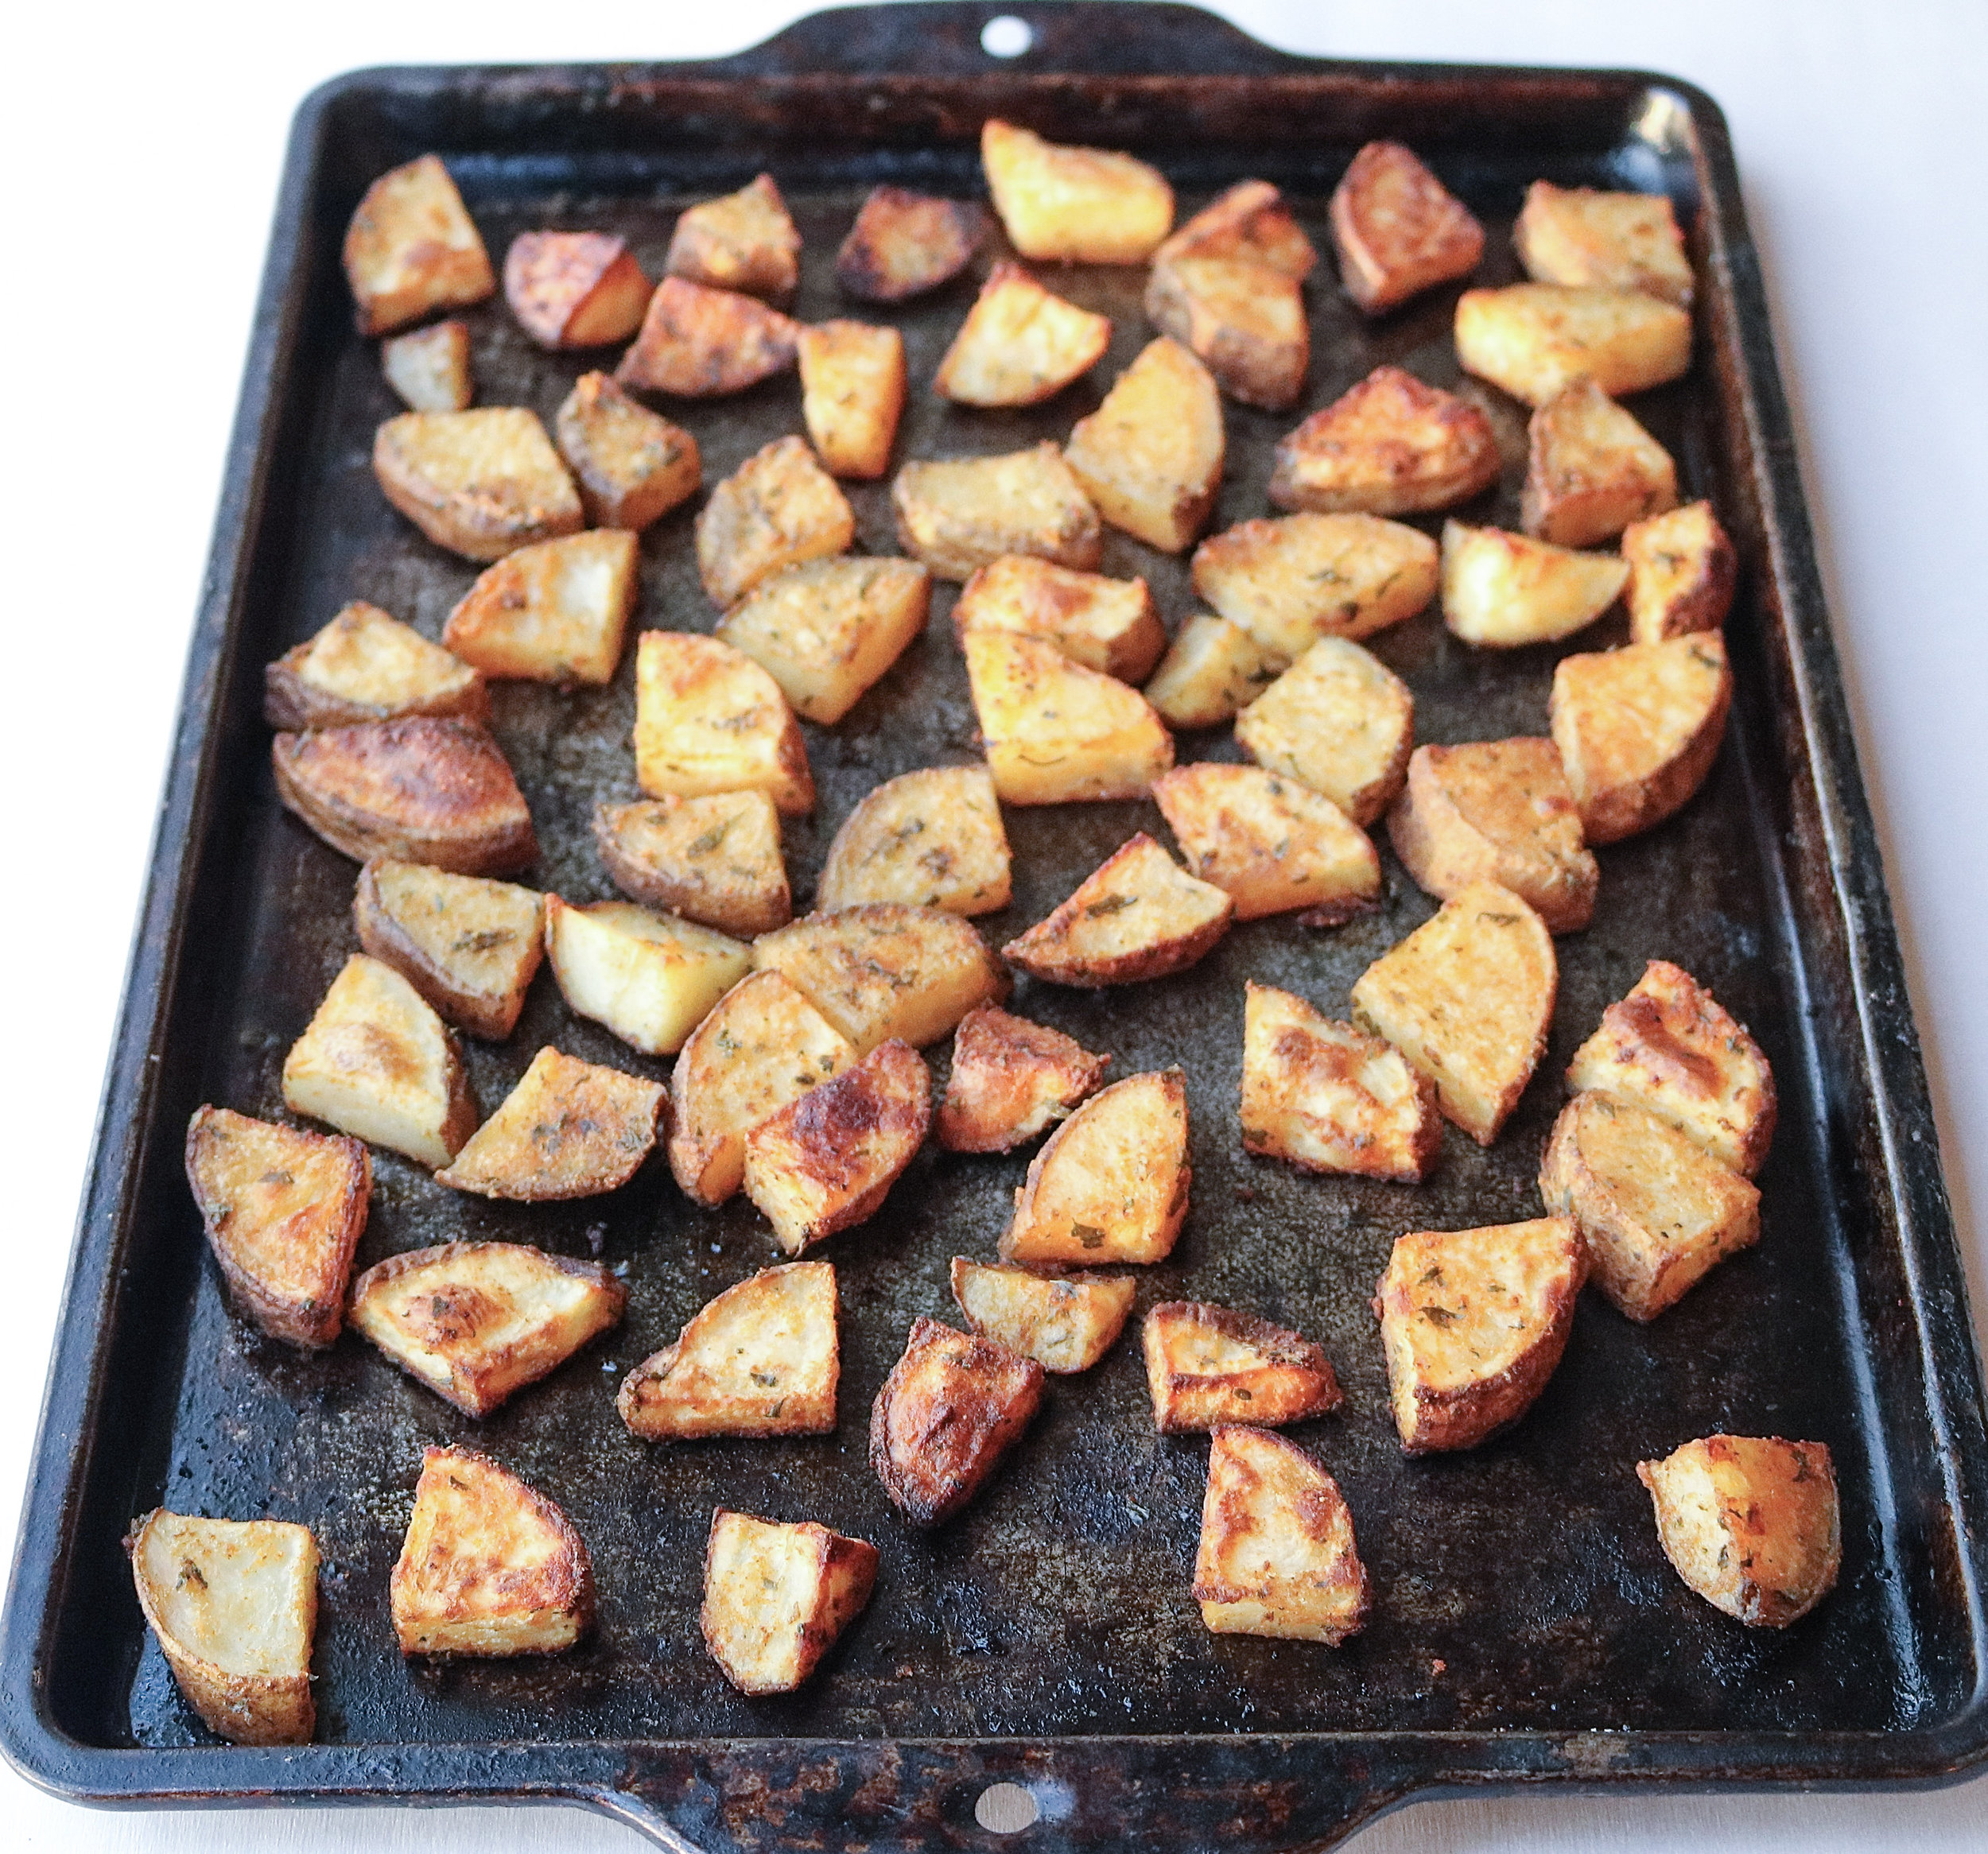 These breakfast potatoes are easy and delicious! They're sure to become a staple on your breakfast menu!